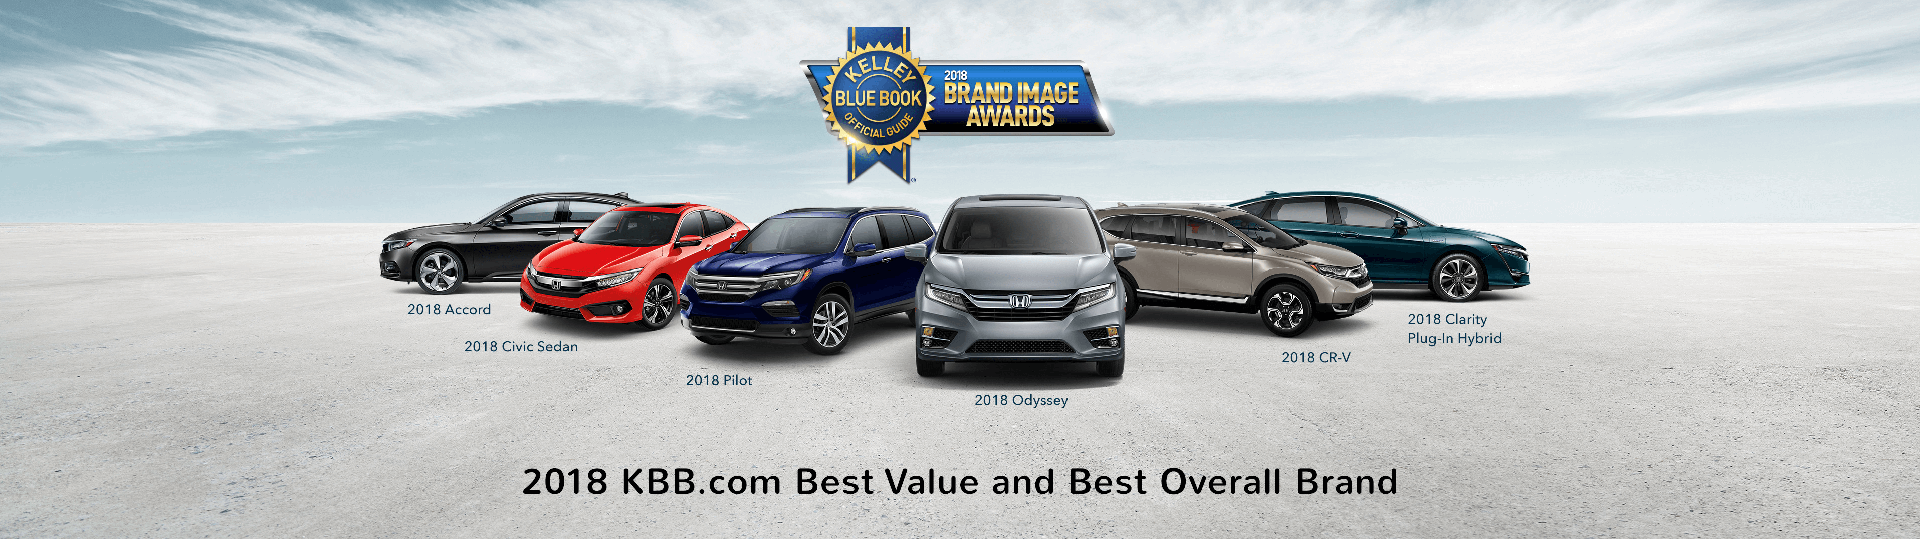 Honda KBB.com Awards Slider